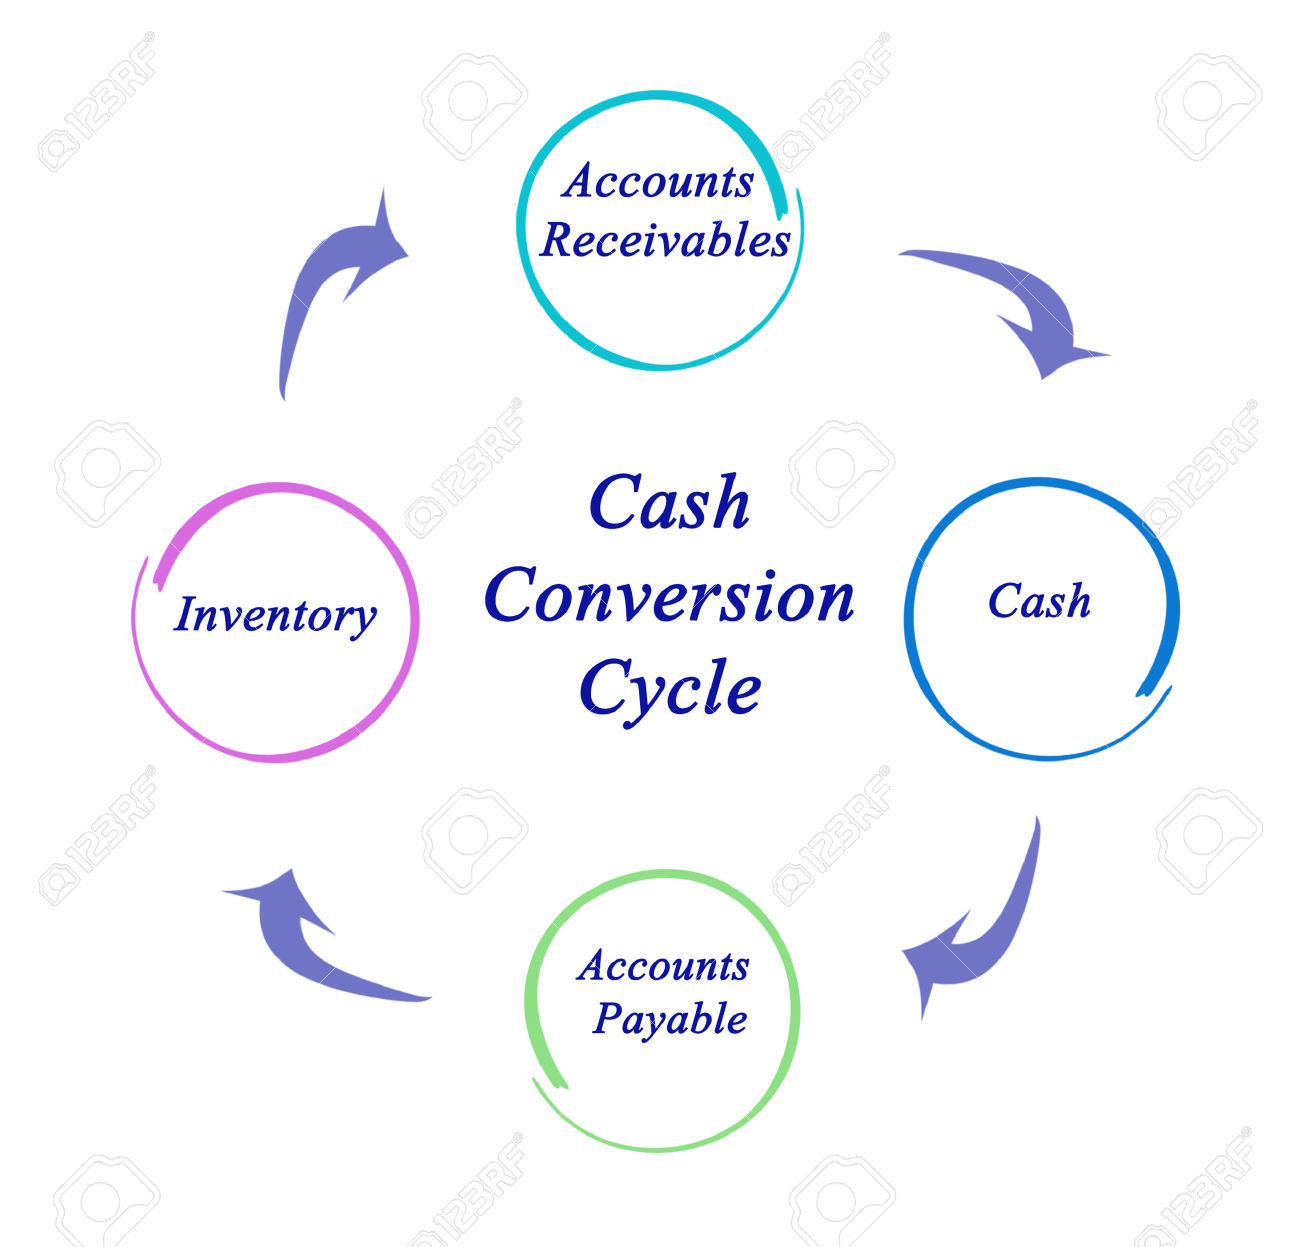 Diagram Of Cash Conversion Cycle Stock Photo, Picture And Royalty.